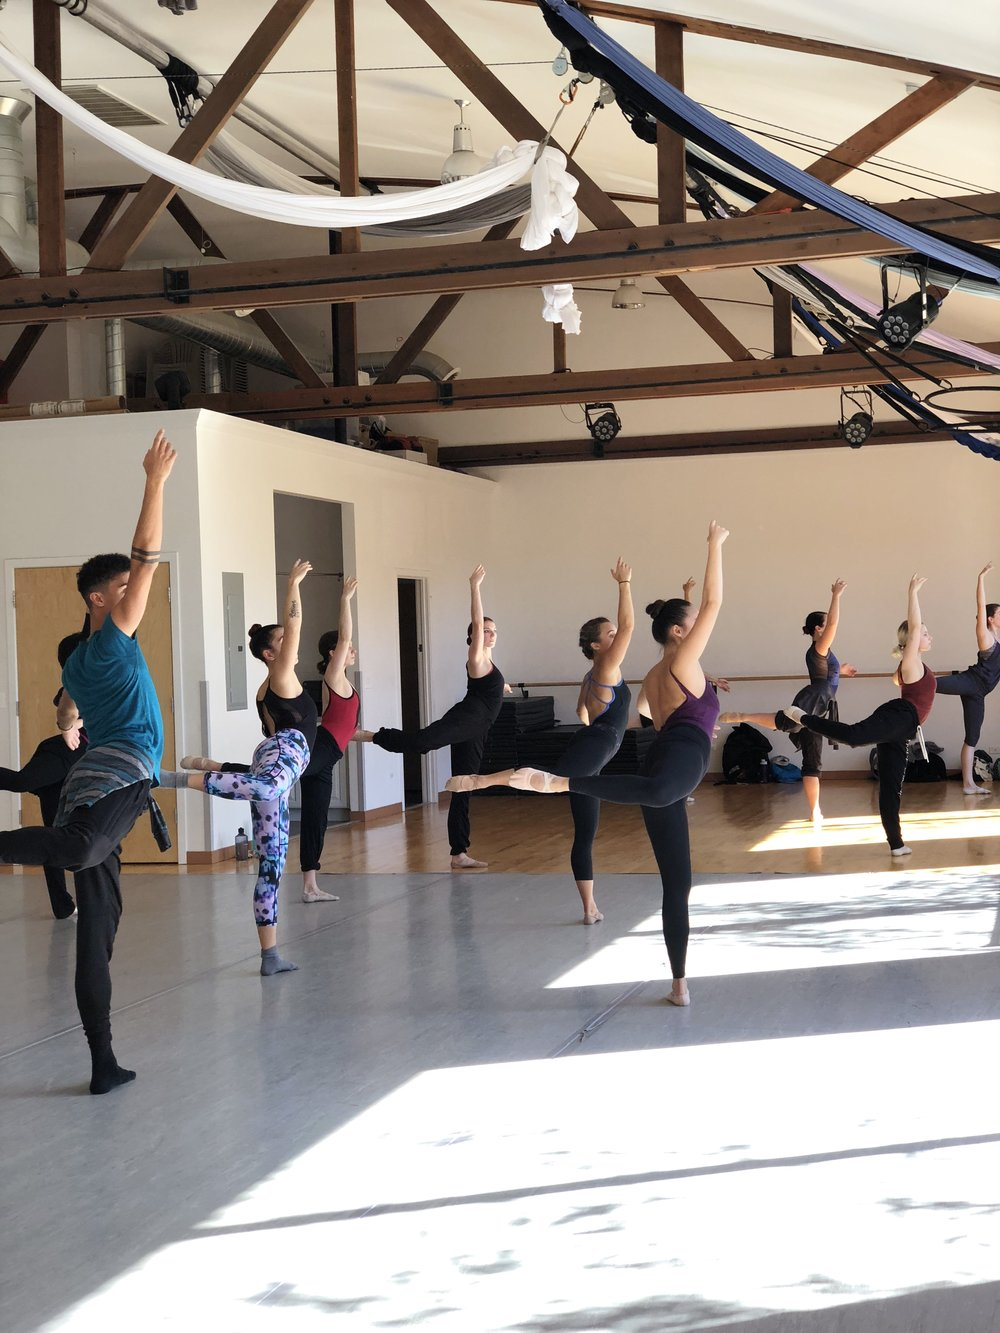 ADV/PRO BALLET   Join us for open company class.   Learn More